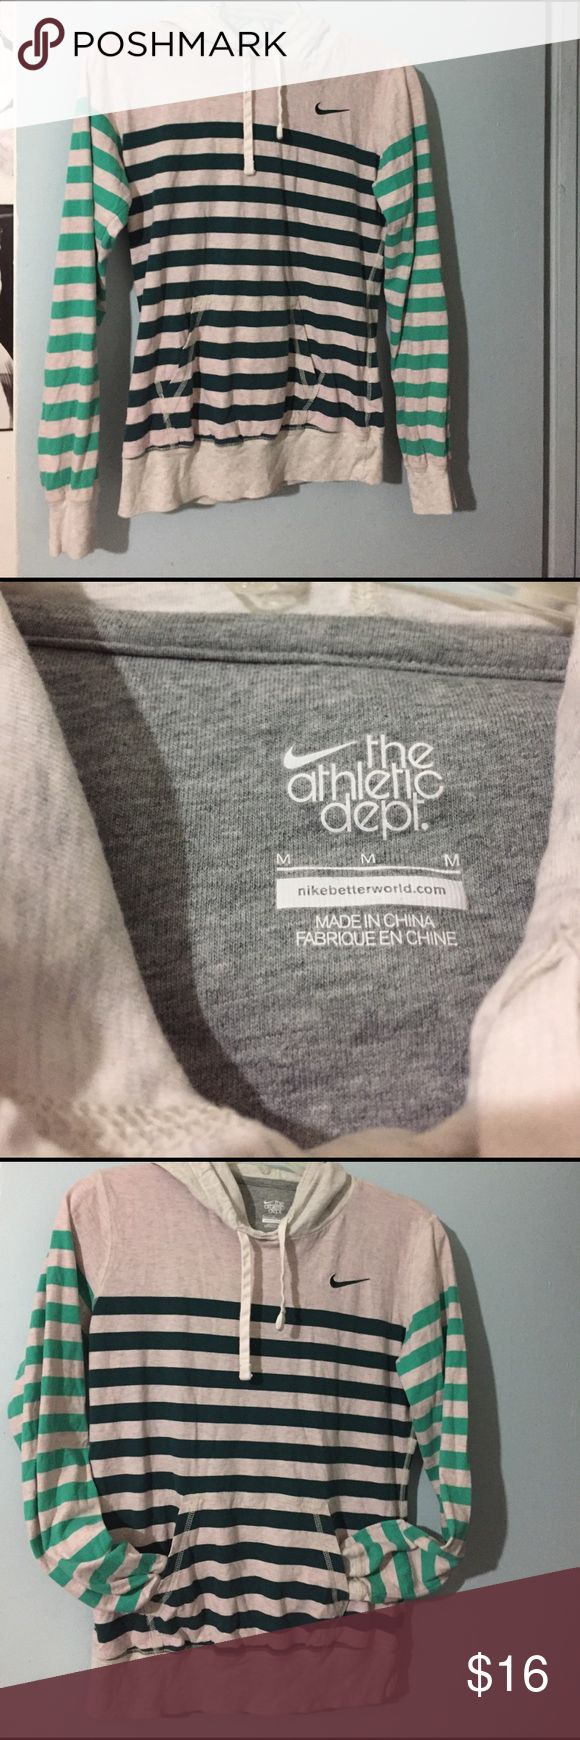 Ladies Nike Hoodie M Gently loved, the athletic dept. Medium, mint and hunter green stripes on heather grey, front pockets, soft 100% cotton Nike Tops Sweatshirts & Hoodies